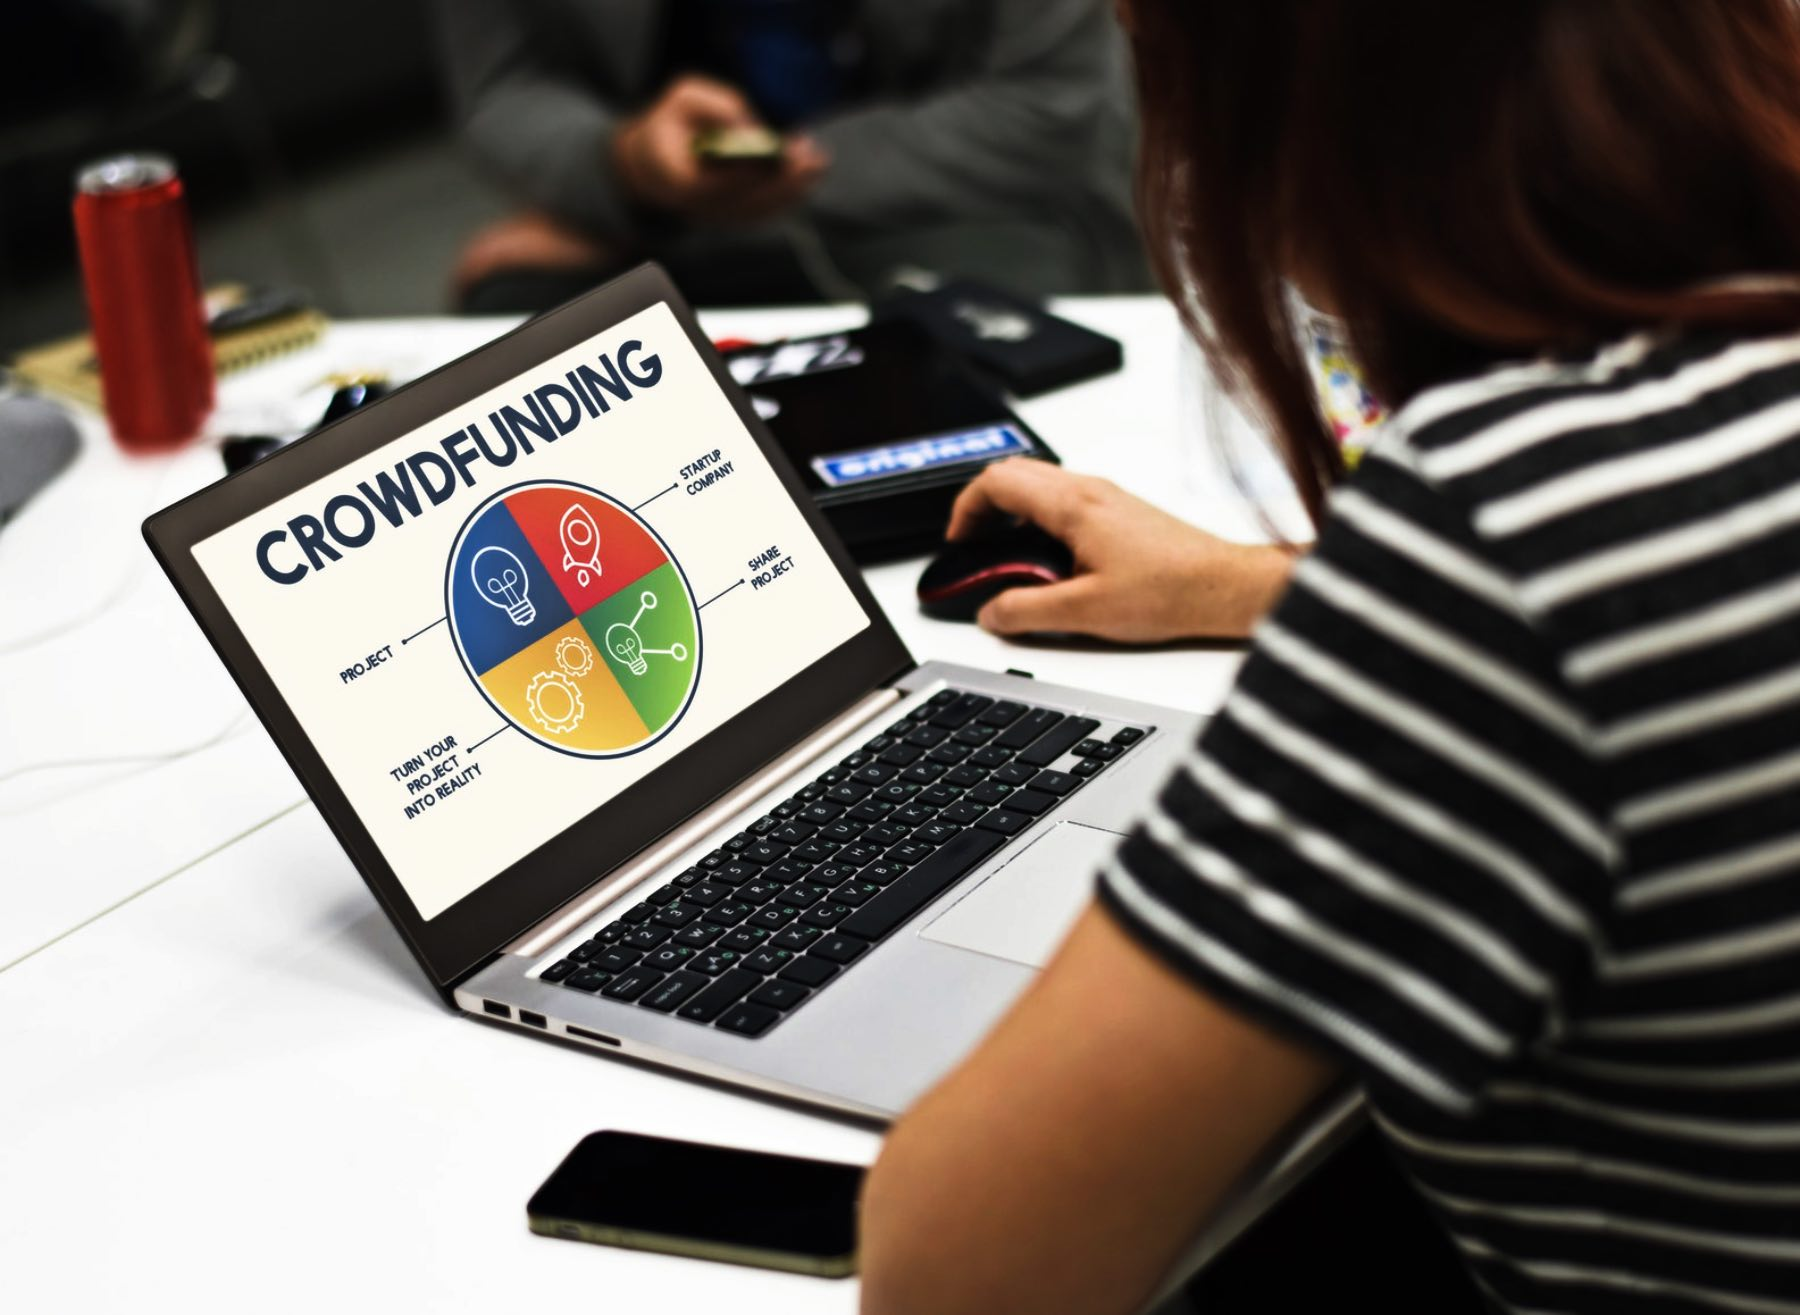 Vital issues to conduct a successful crowdfunding campaign in the digital era